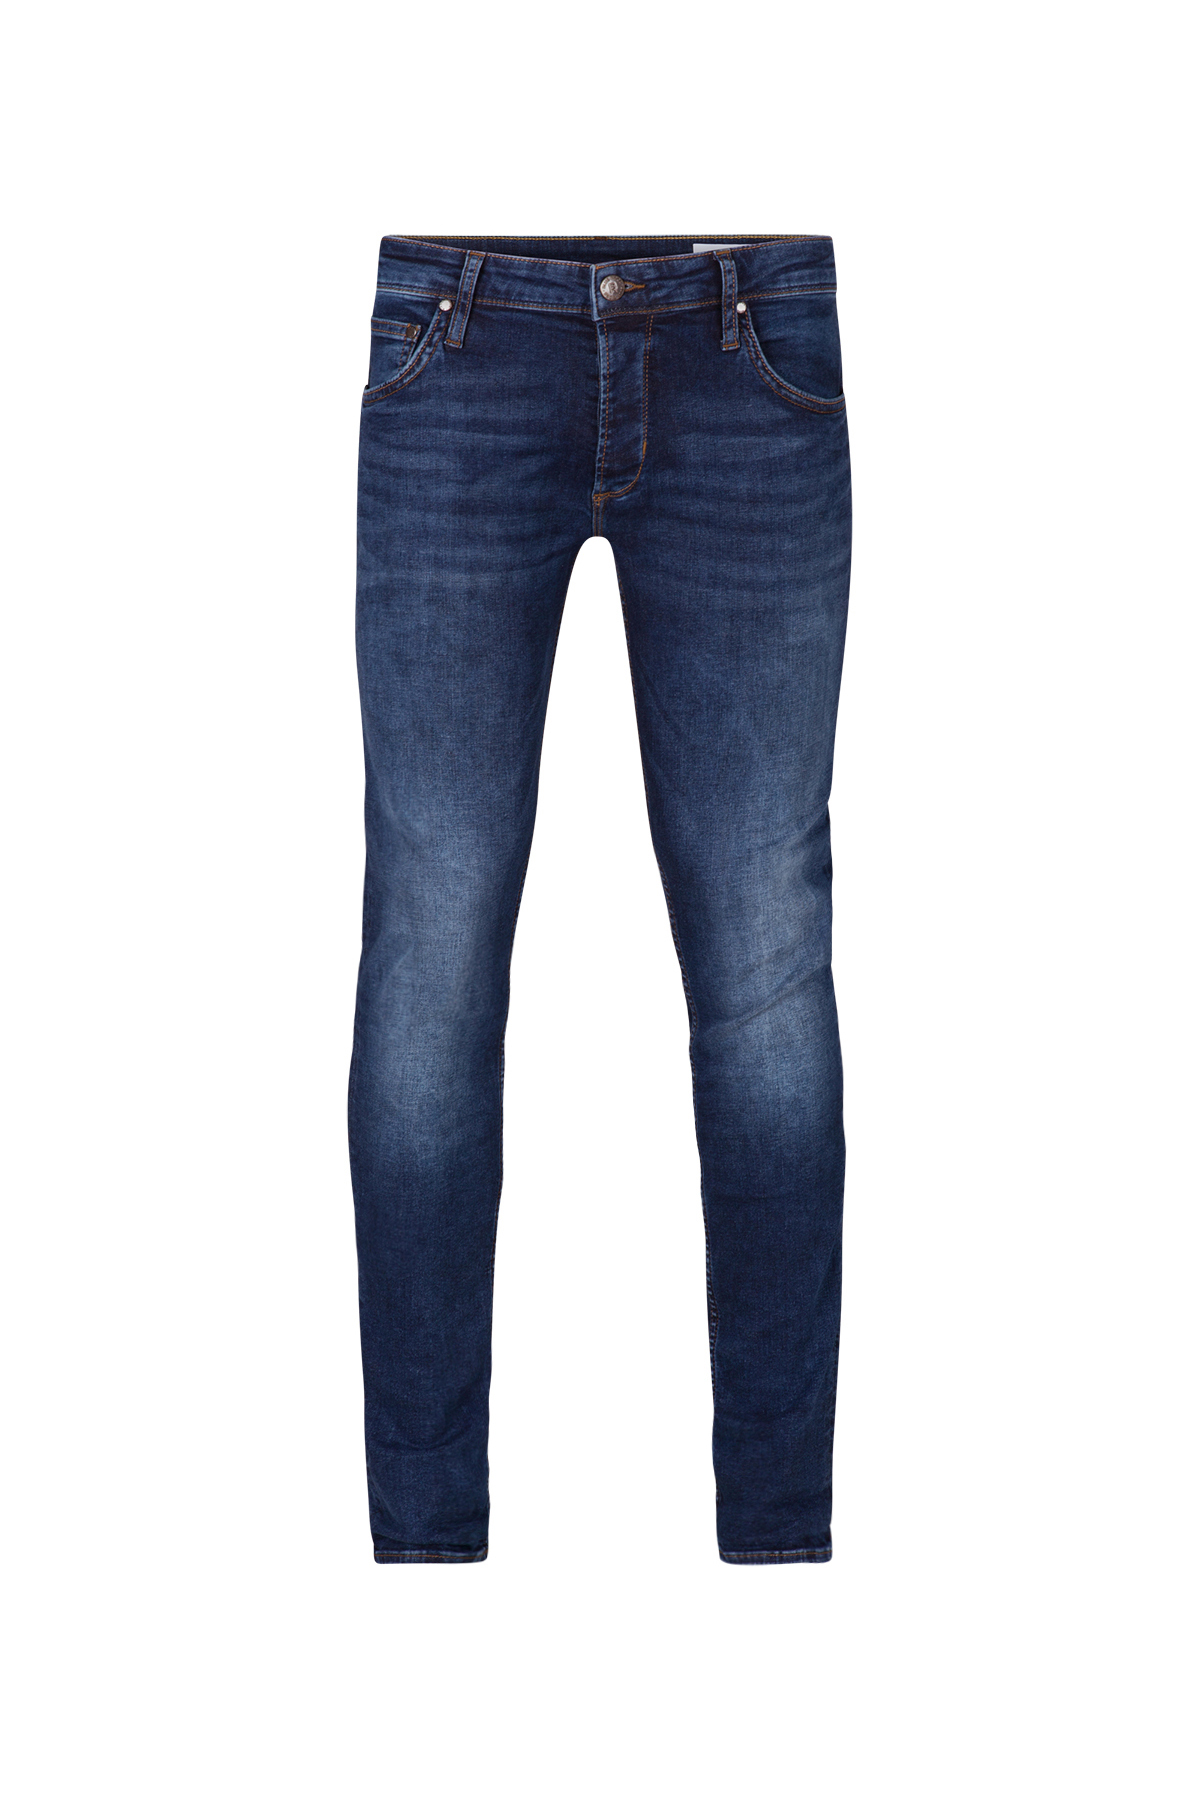 JEANS SLIM TAPERED STRETCH HOMME_JEANS SLIM TAPERED STRETCH HOMME, Bleu foncé